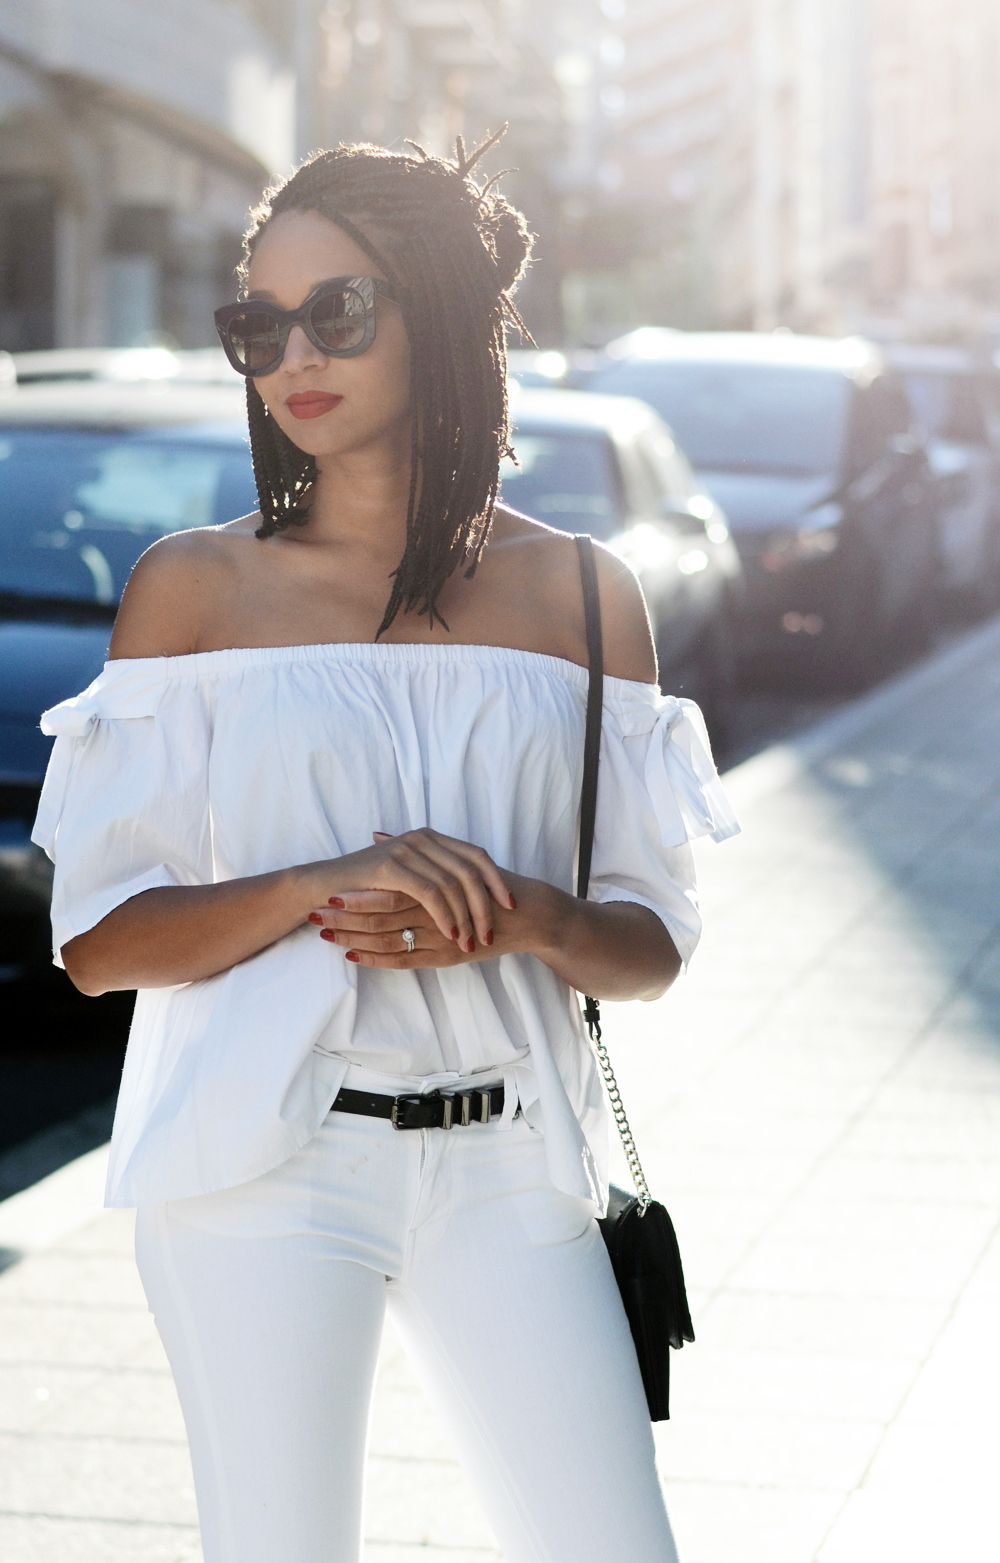 mercredie-blog-fashion-blogger-mode-geneve-suisse-santander-celine-marta-all-white-outfit-flare-elisabetta-franchetti-ceinture-kooples-1